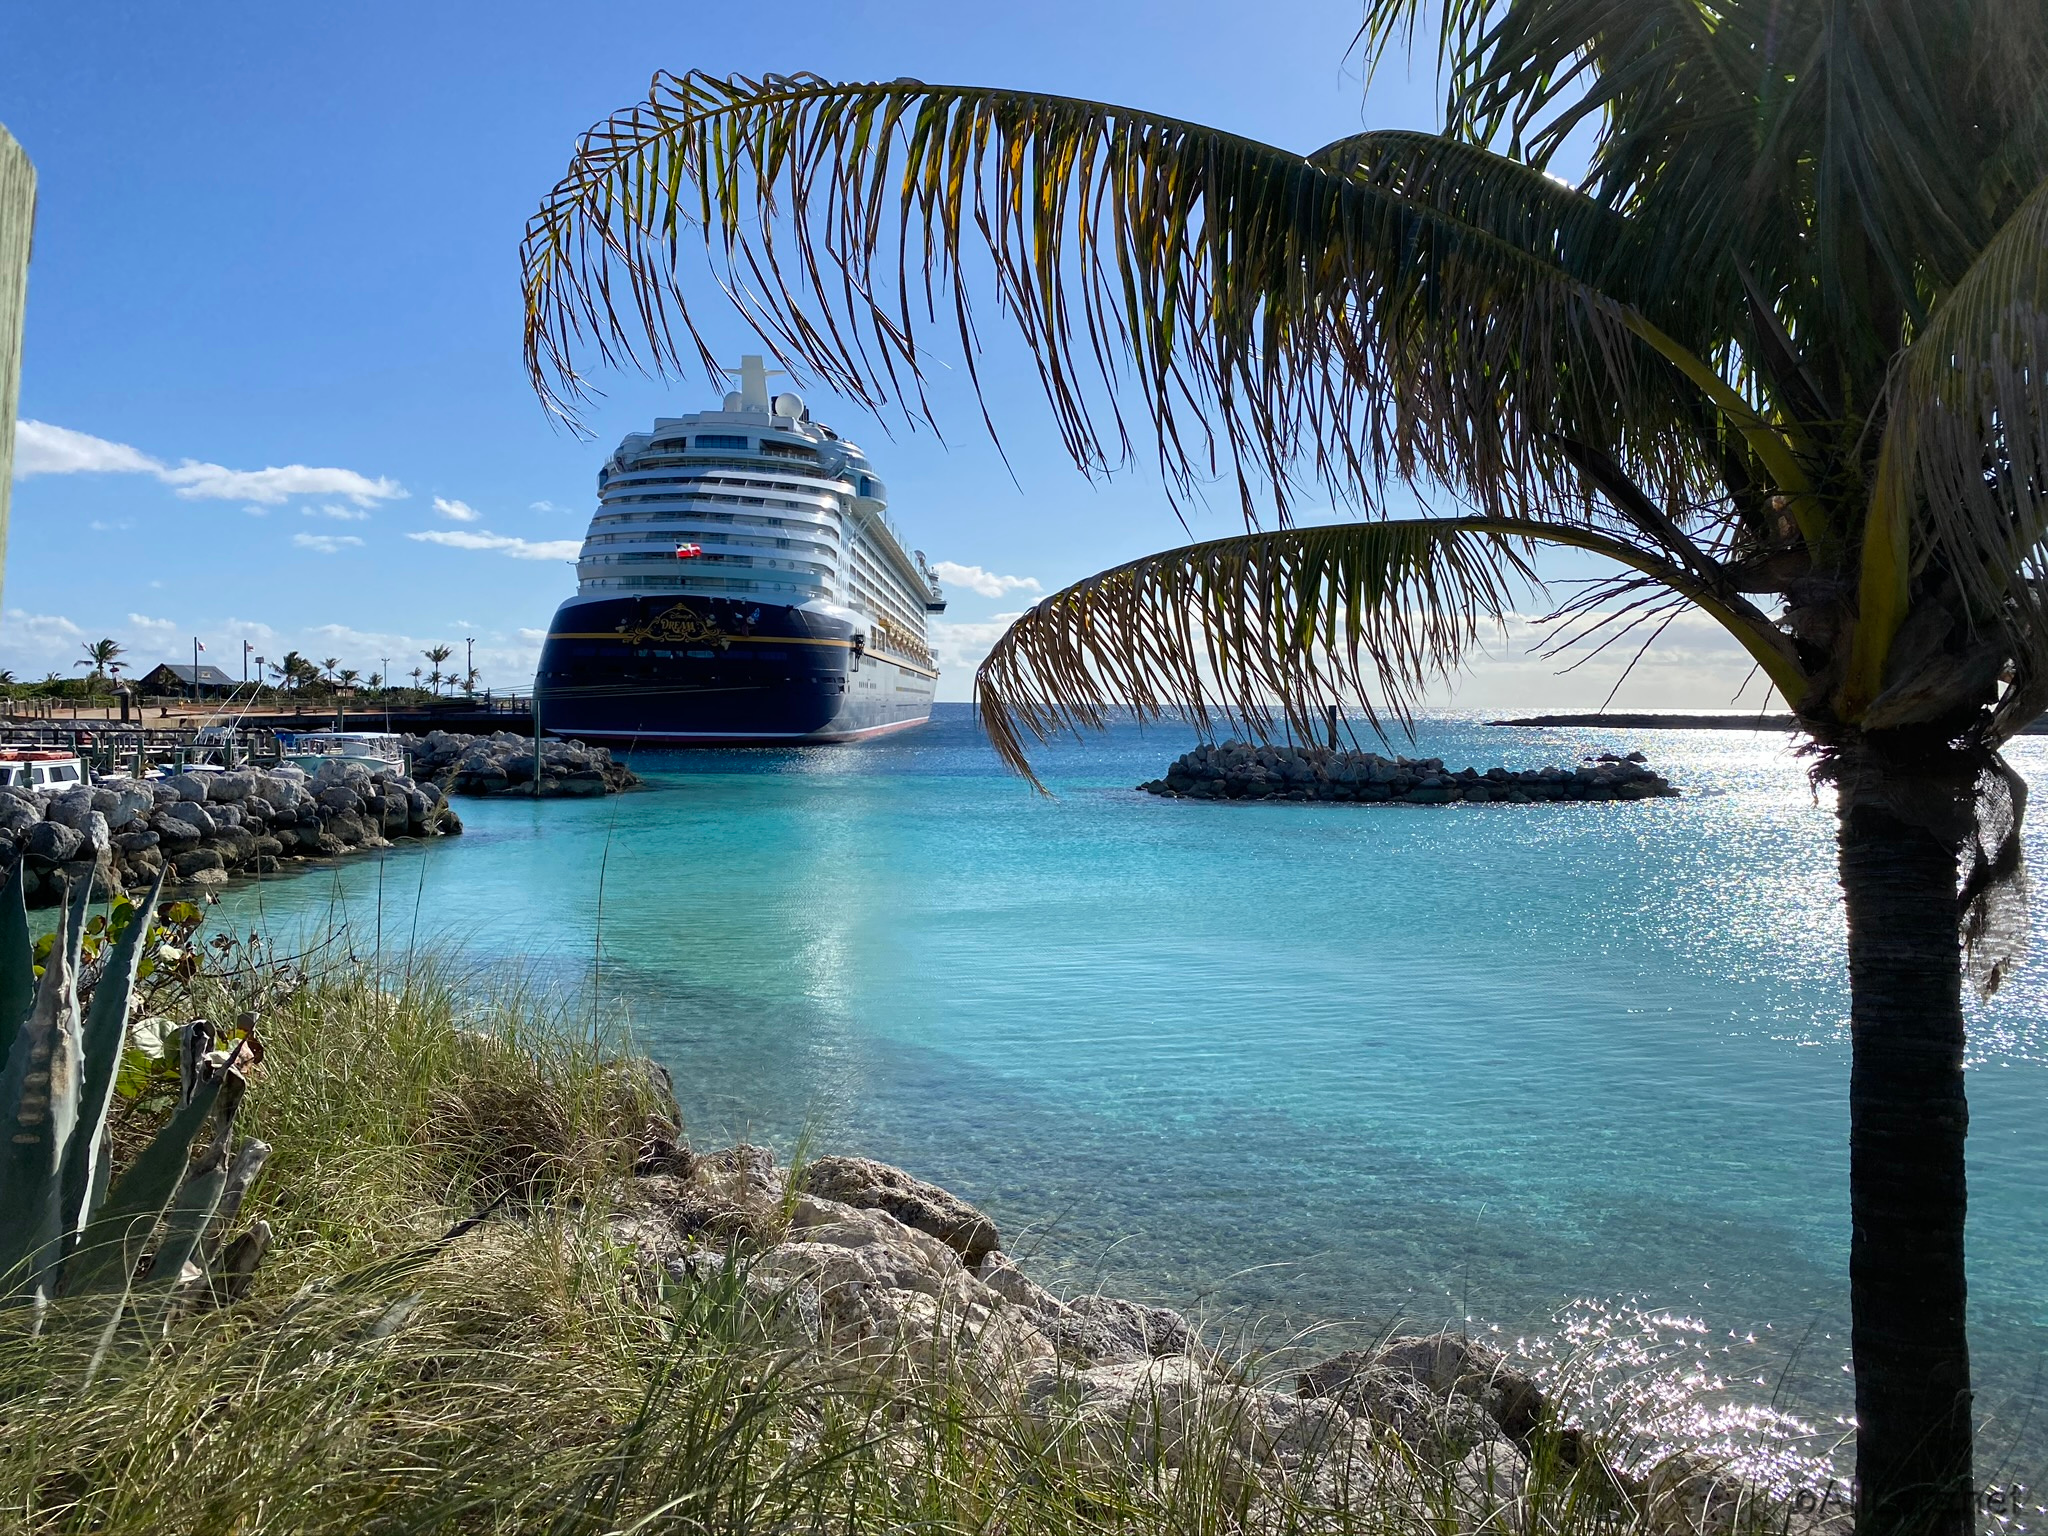 News The Disney Cruise Line Has Suspended Disney Dream And Fantasy Departures Through September Allears Net